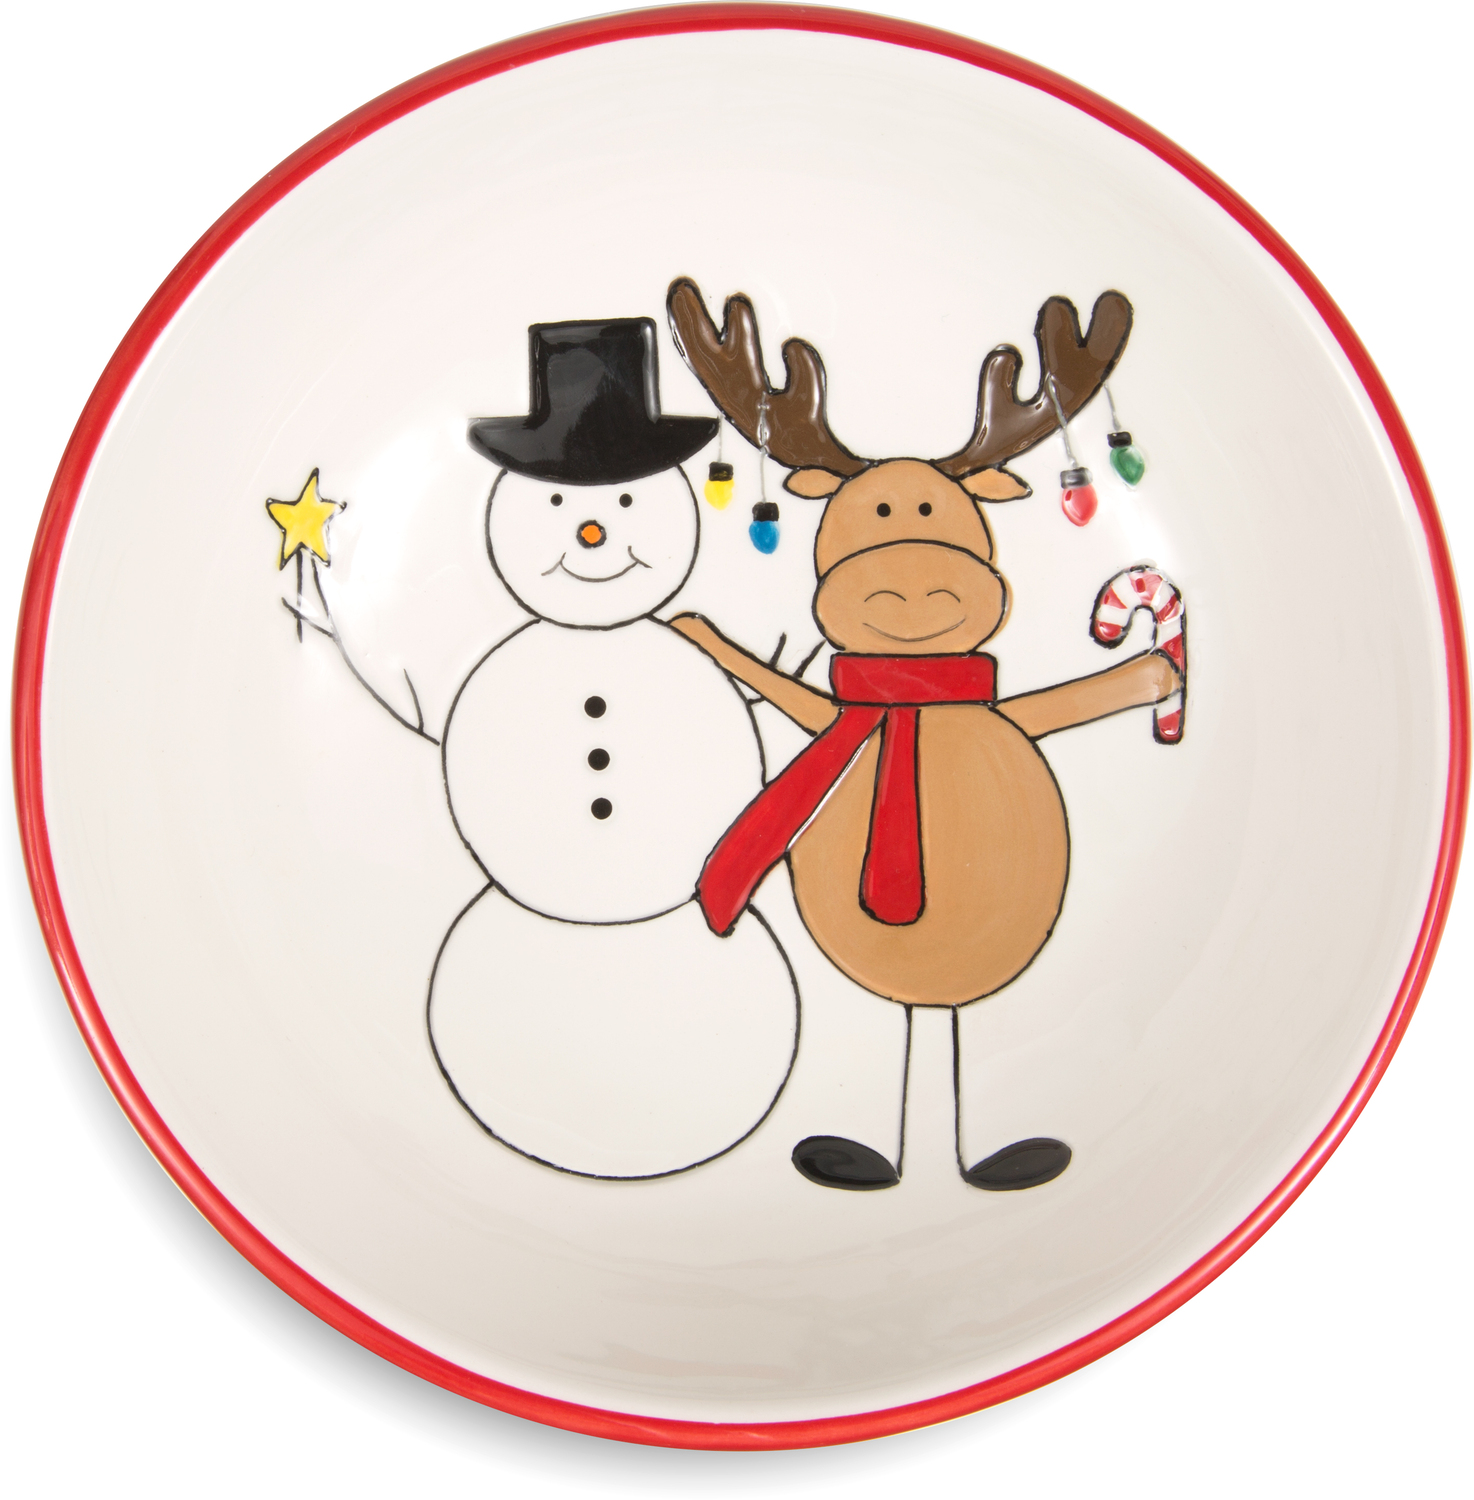 "Snowman with Moose by Holiday Hoopla - Snowman with Moose - 6.5"" Bowl"